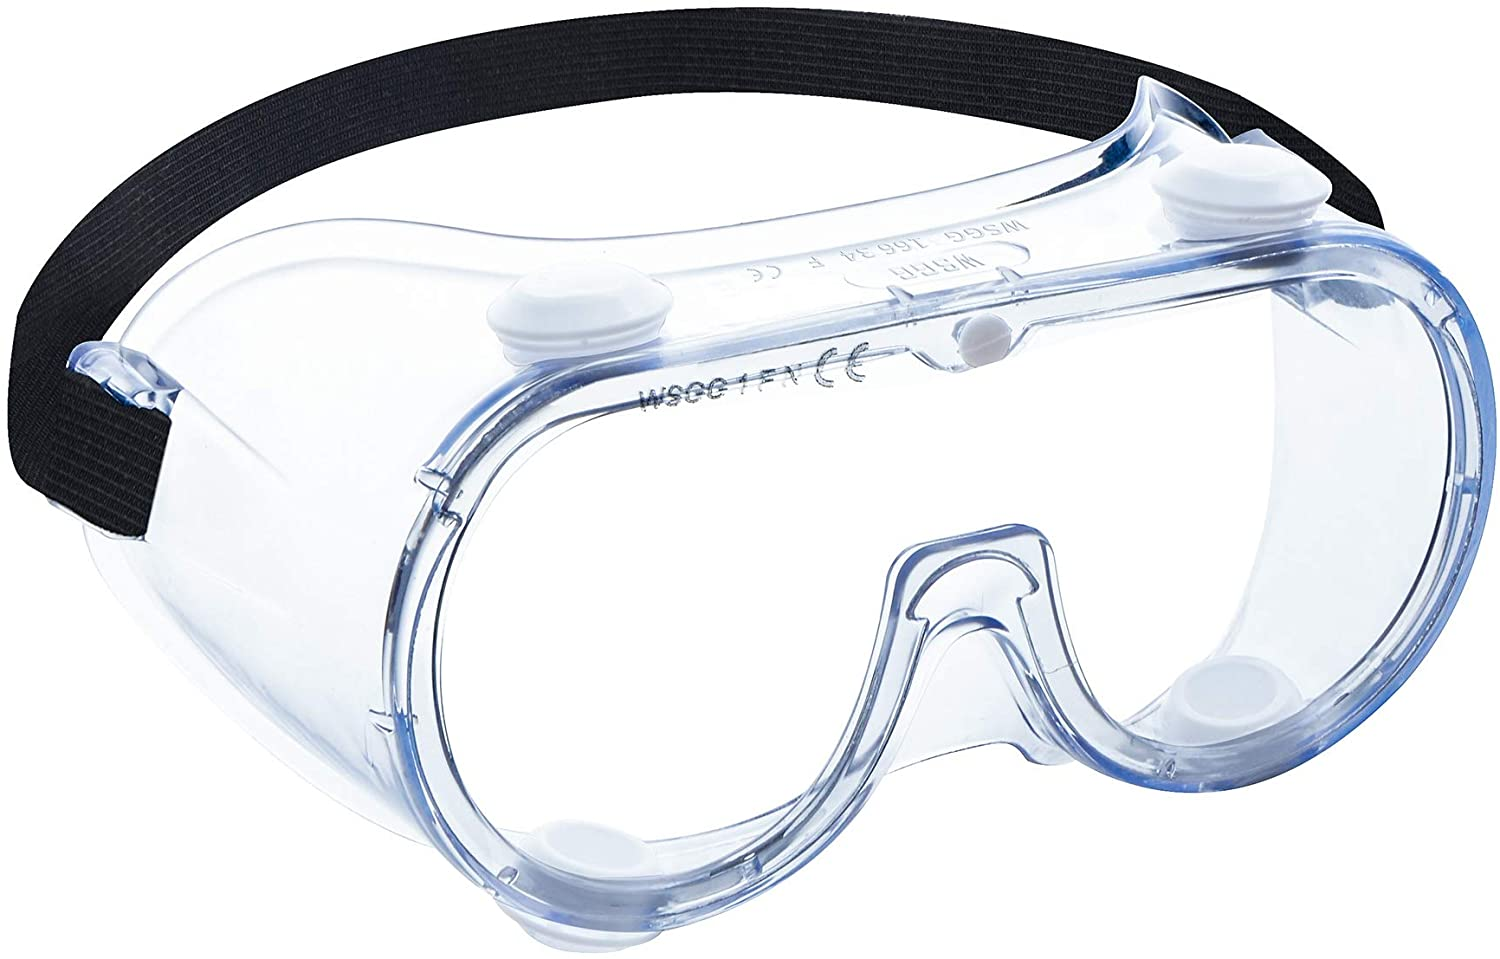 WSGG Medical Goggles FDA registered Over G Fit Safety Sacramento Mall Inexpensive